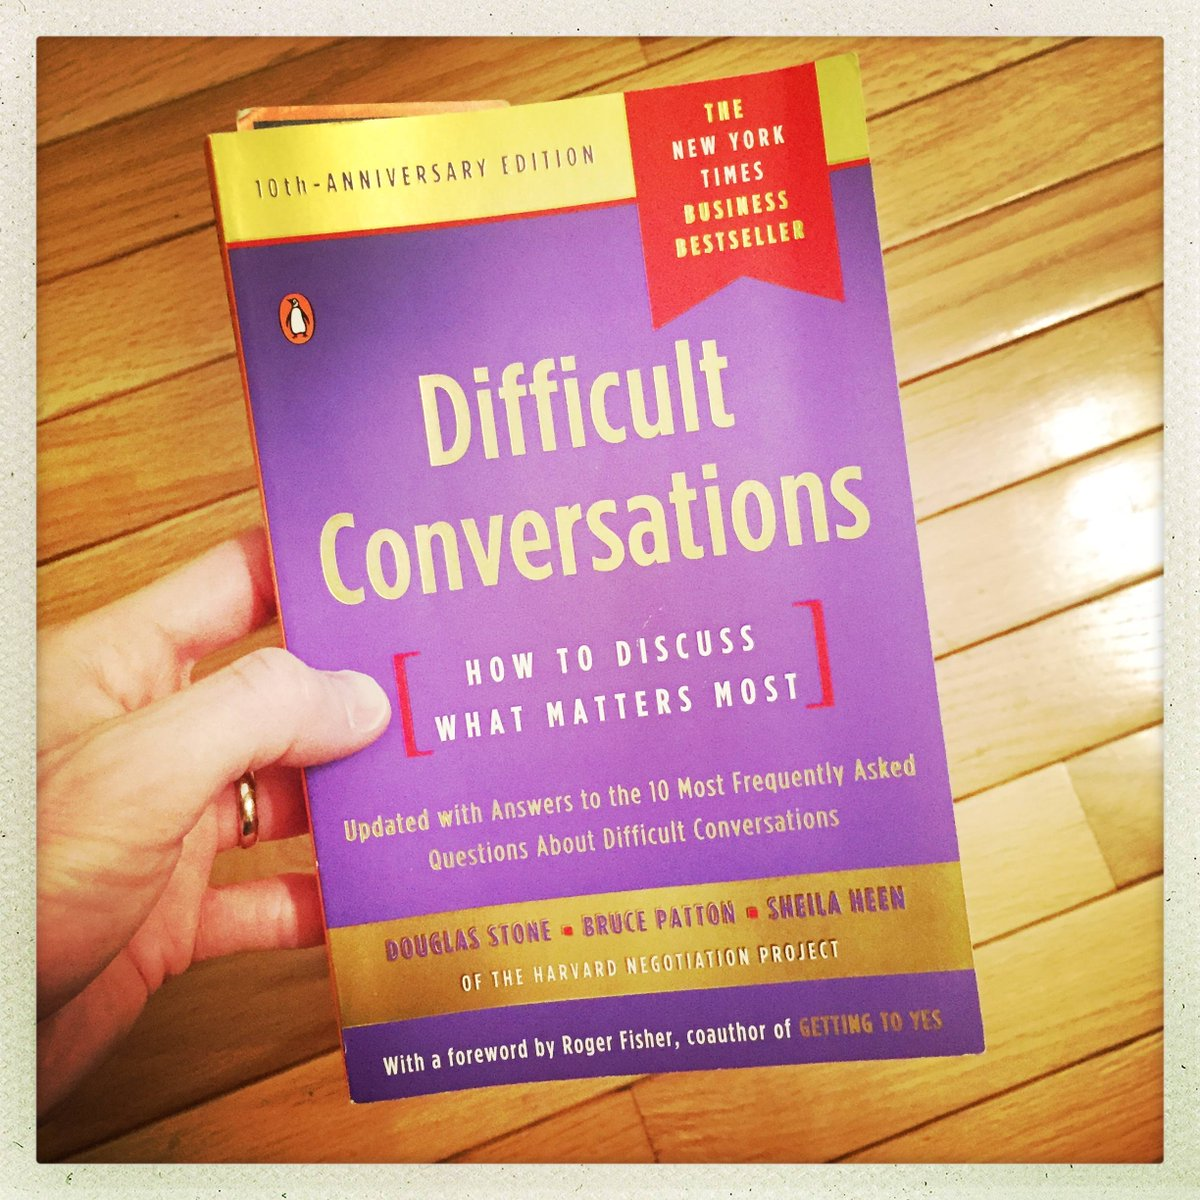 I finished reading &quot;Difficult Conversations: How to Discuss What Matters Most&quot; by Stone, Patton, &amp; Heen. Fantastic! I need to grow significantly in these principles. Highly recommended for anyone in business, ministry, or #leadership. #gls18 <br>http://pic.twitter.com/ySGXXlSaOK